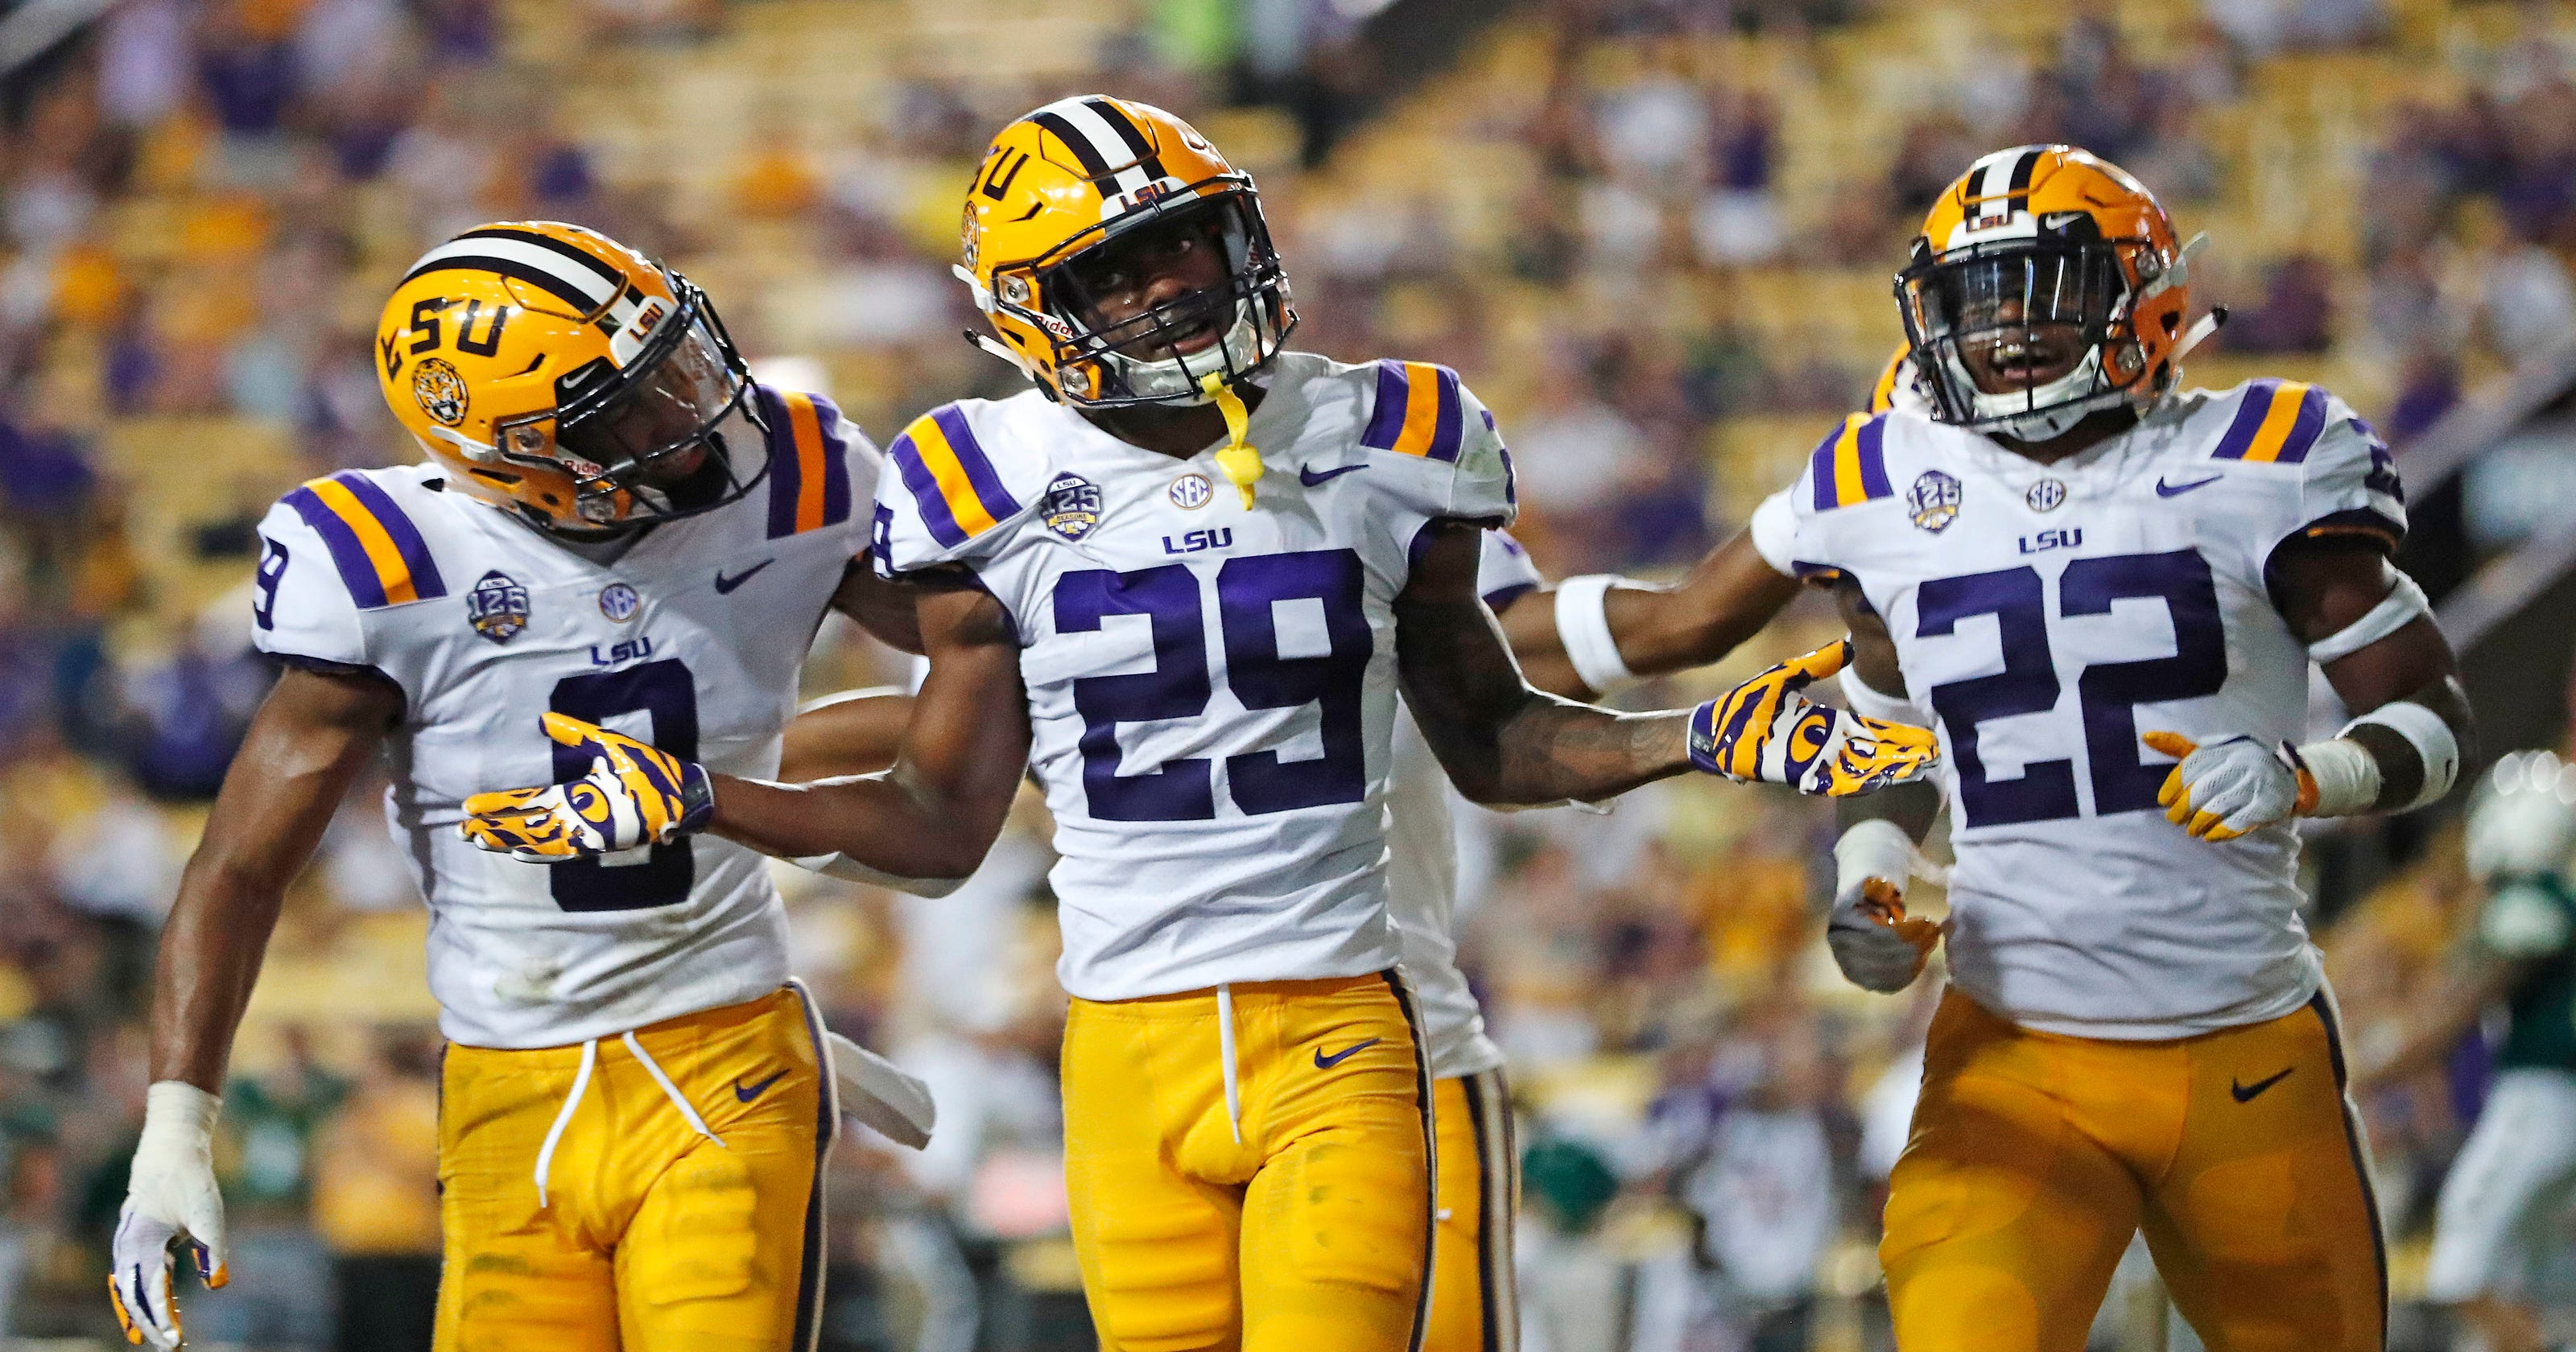 Browns select Greedy Williams in 2nd round of NFL Draft